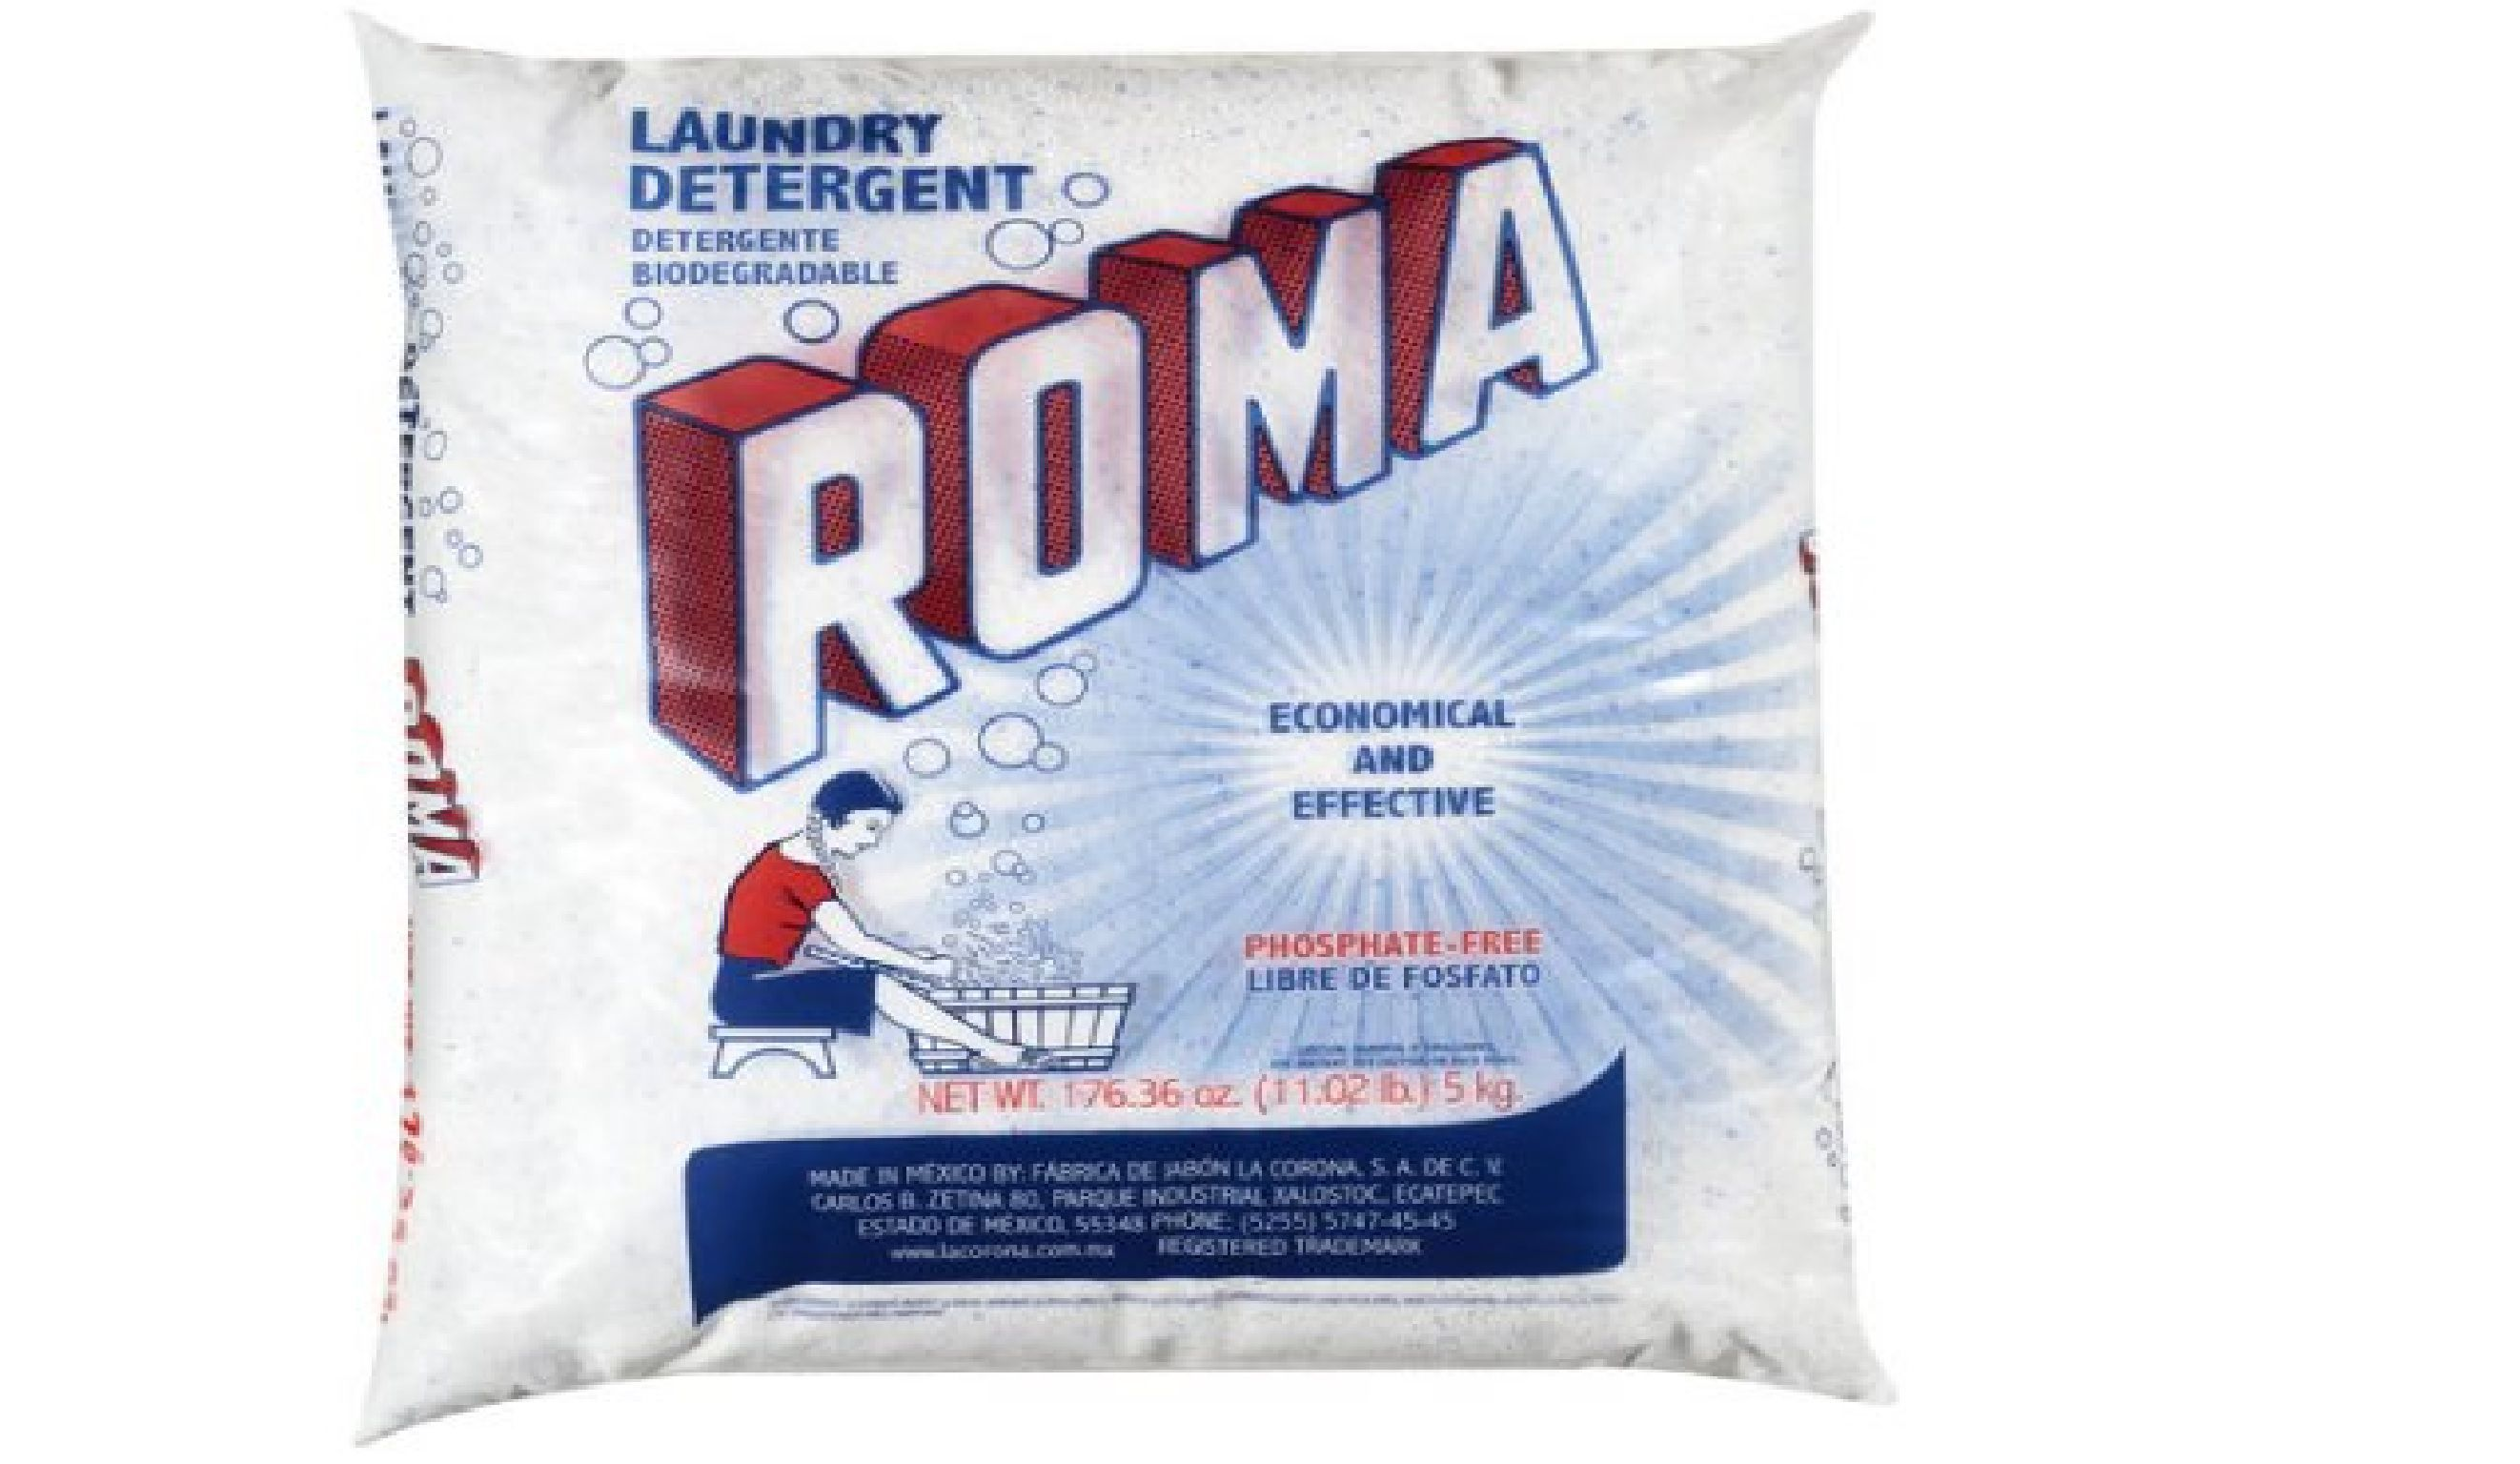 The 10 Best Laundry Detergents Of 2021 Roma Laundry Detergent Laundry Detergent Foca Laundry Detergent